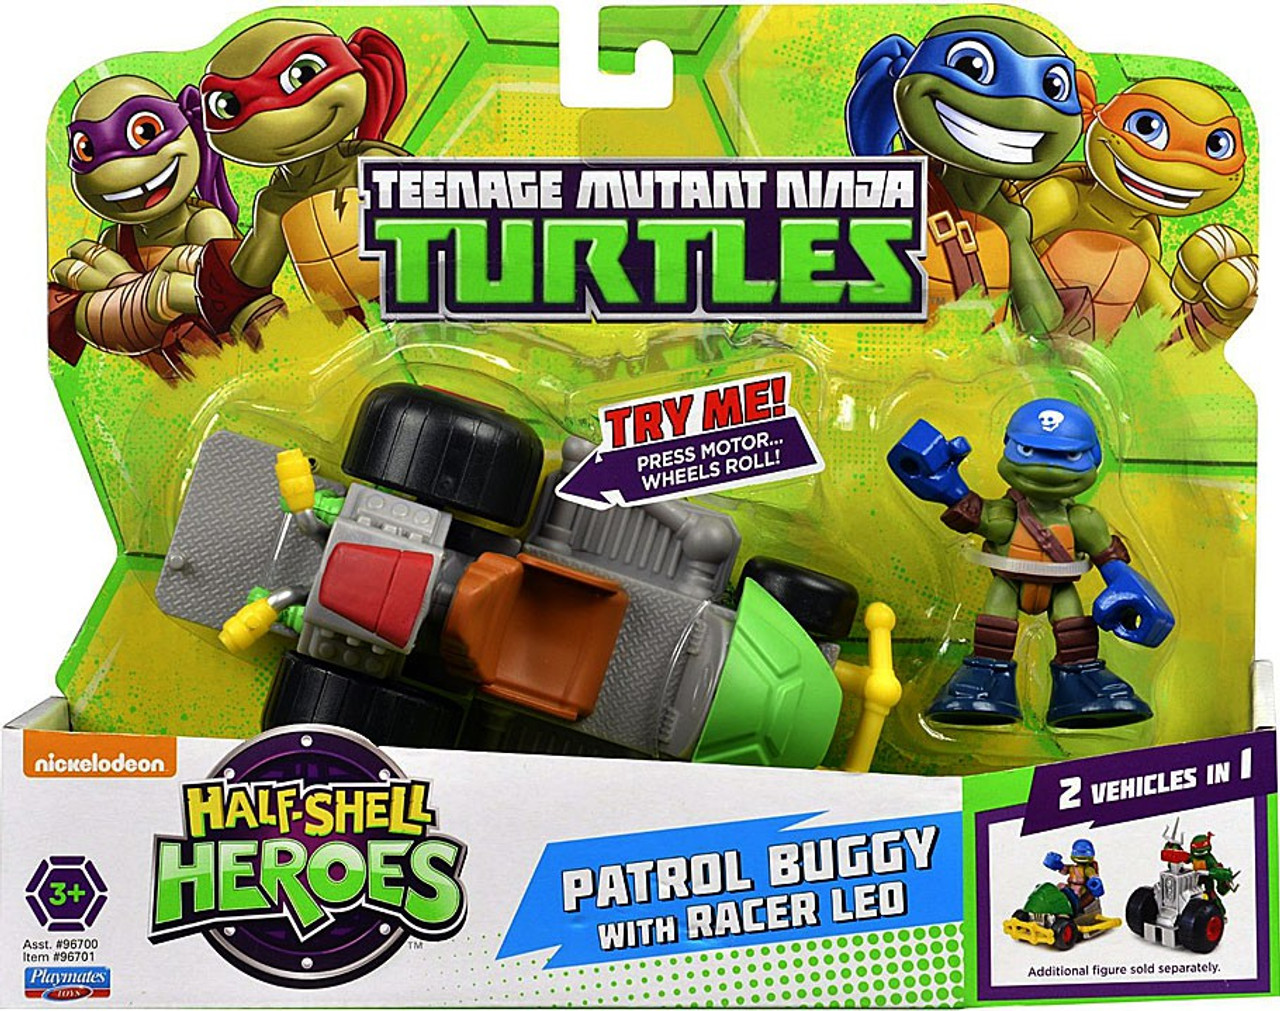 Teenage Mutant Ninja Turtles TMNT Half Shell Heroes Patrol Buggy Action Figure Vehicle